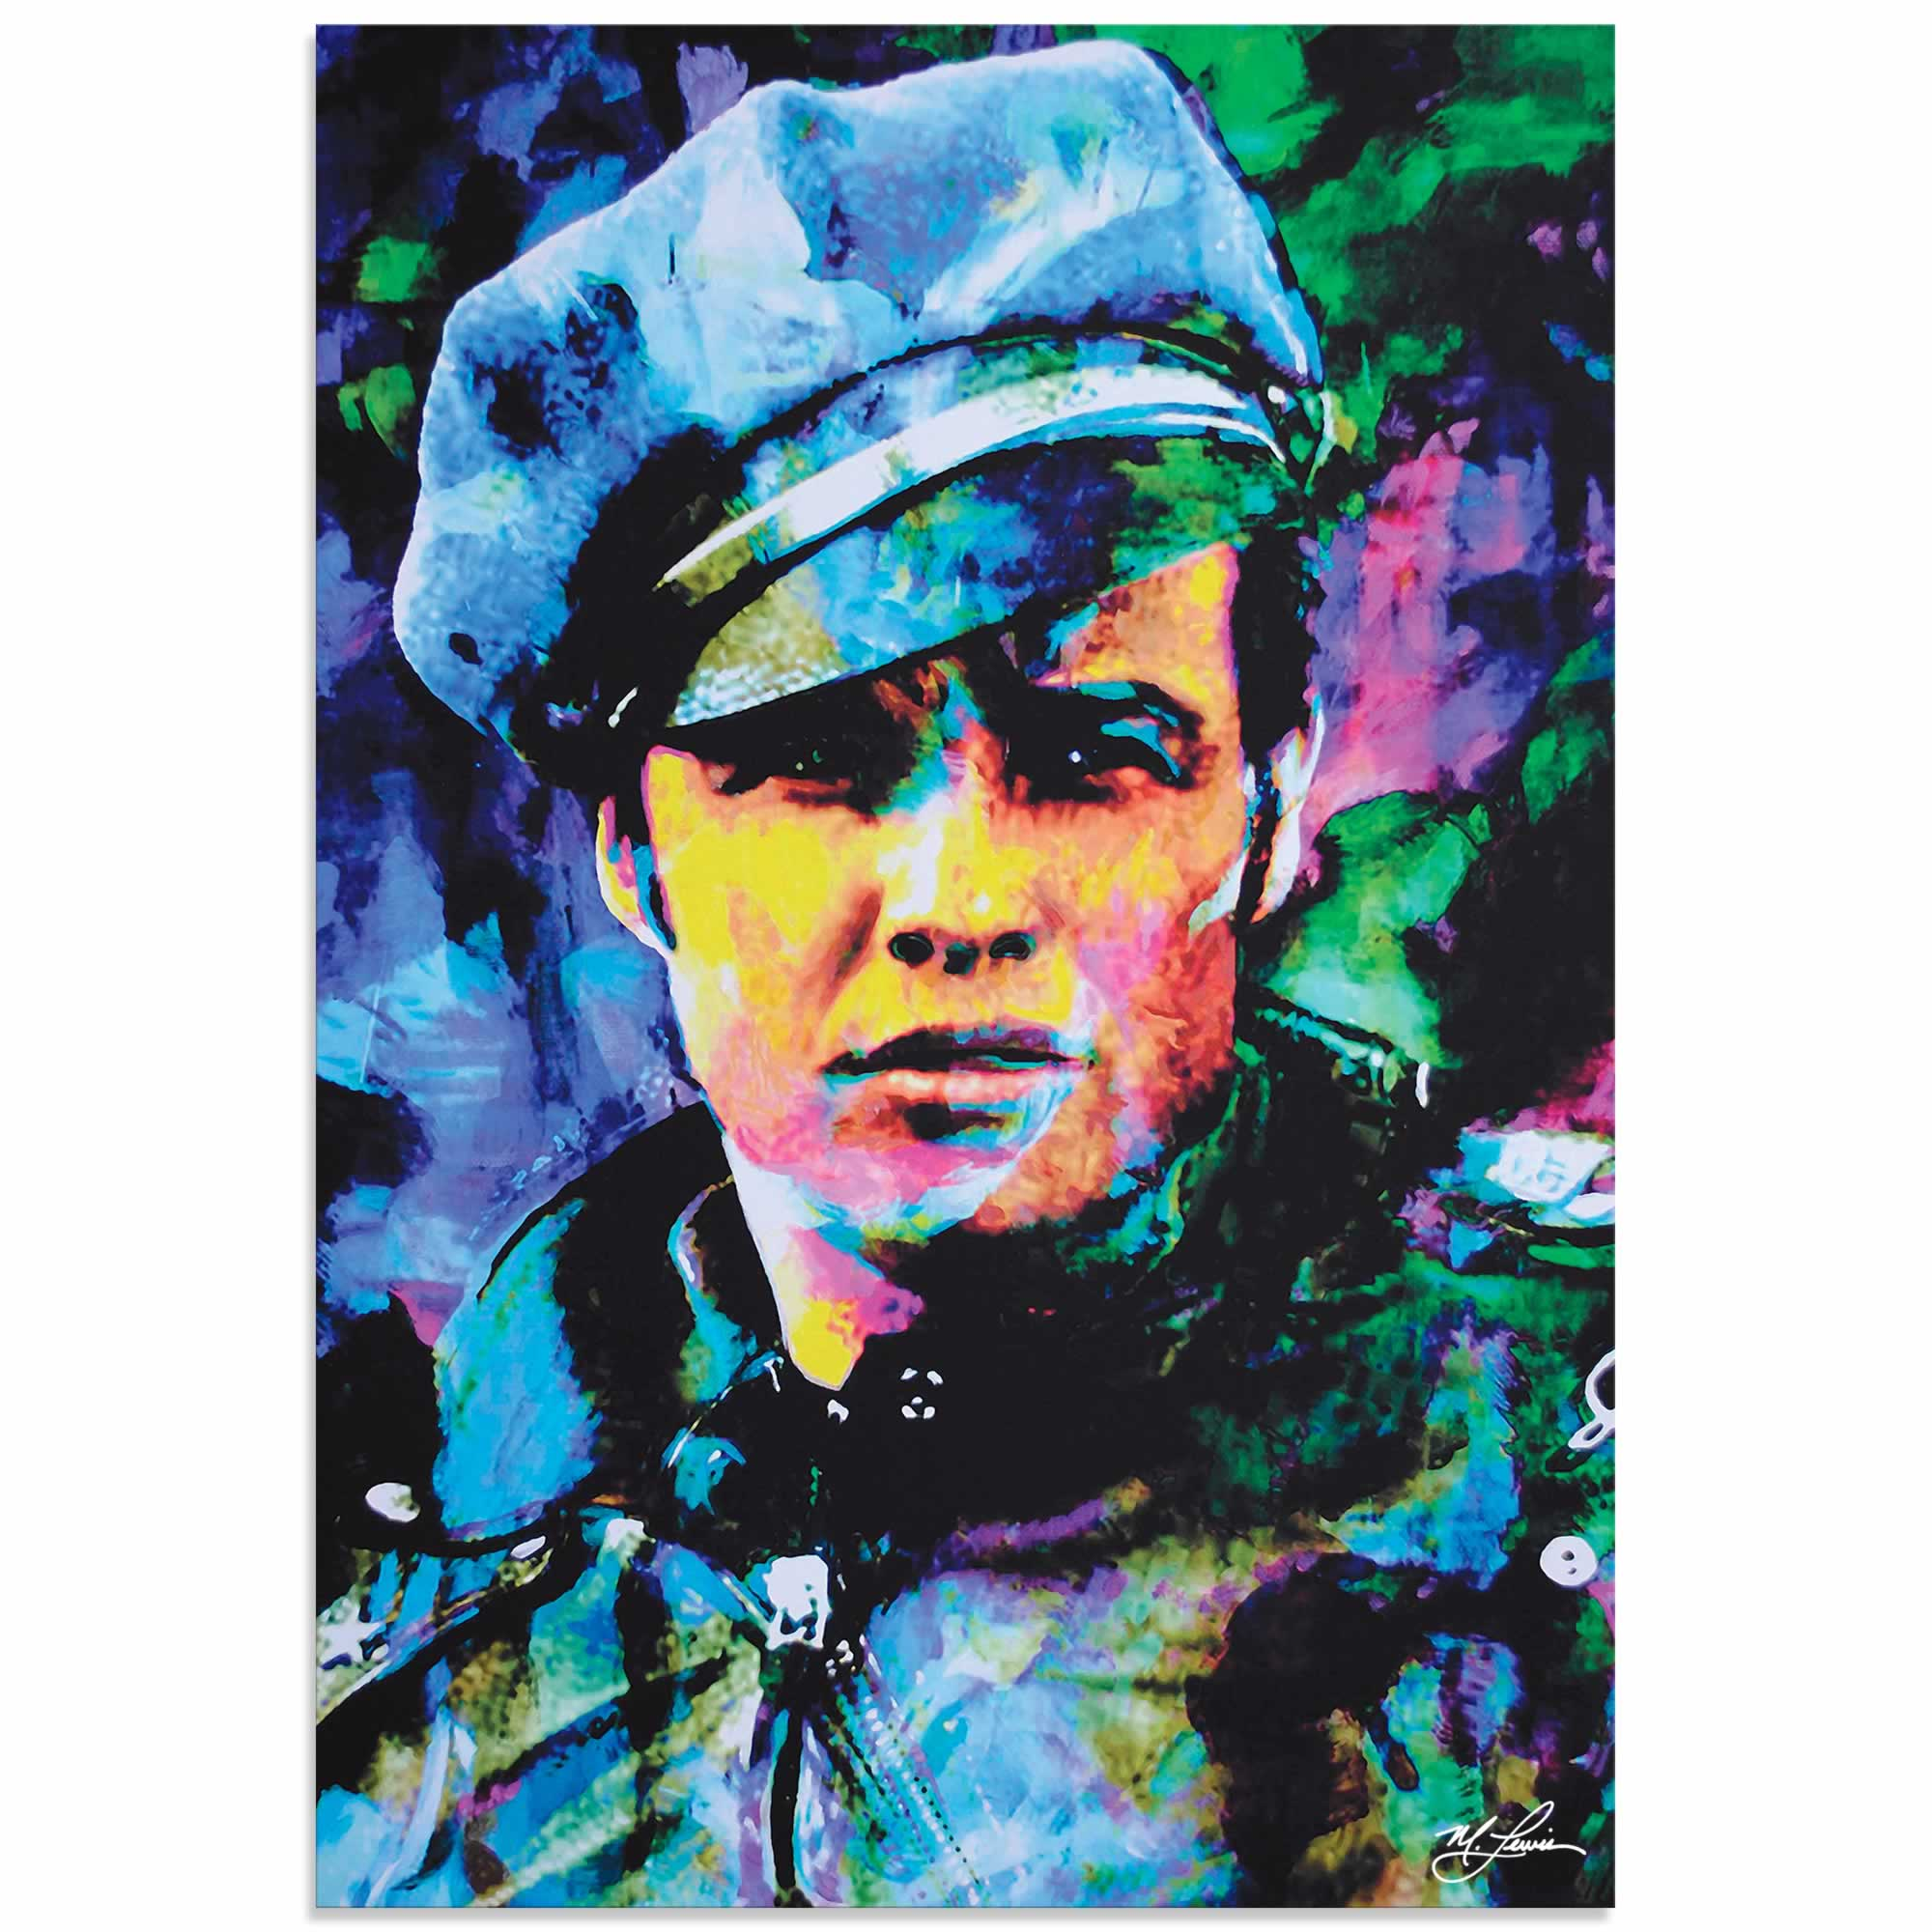 Marlon Brando Whadda Ya Got | Pop Art Painting by Mark Lewis, Signed & Numbered Limited Edition